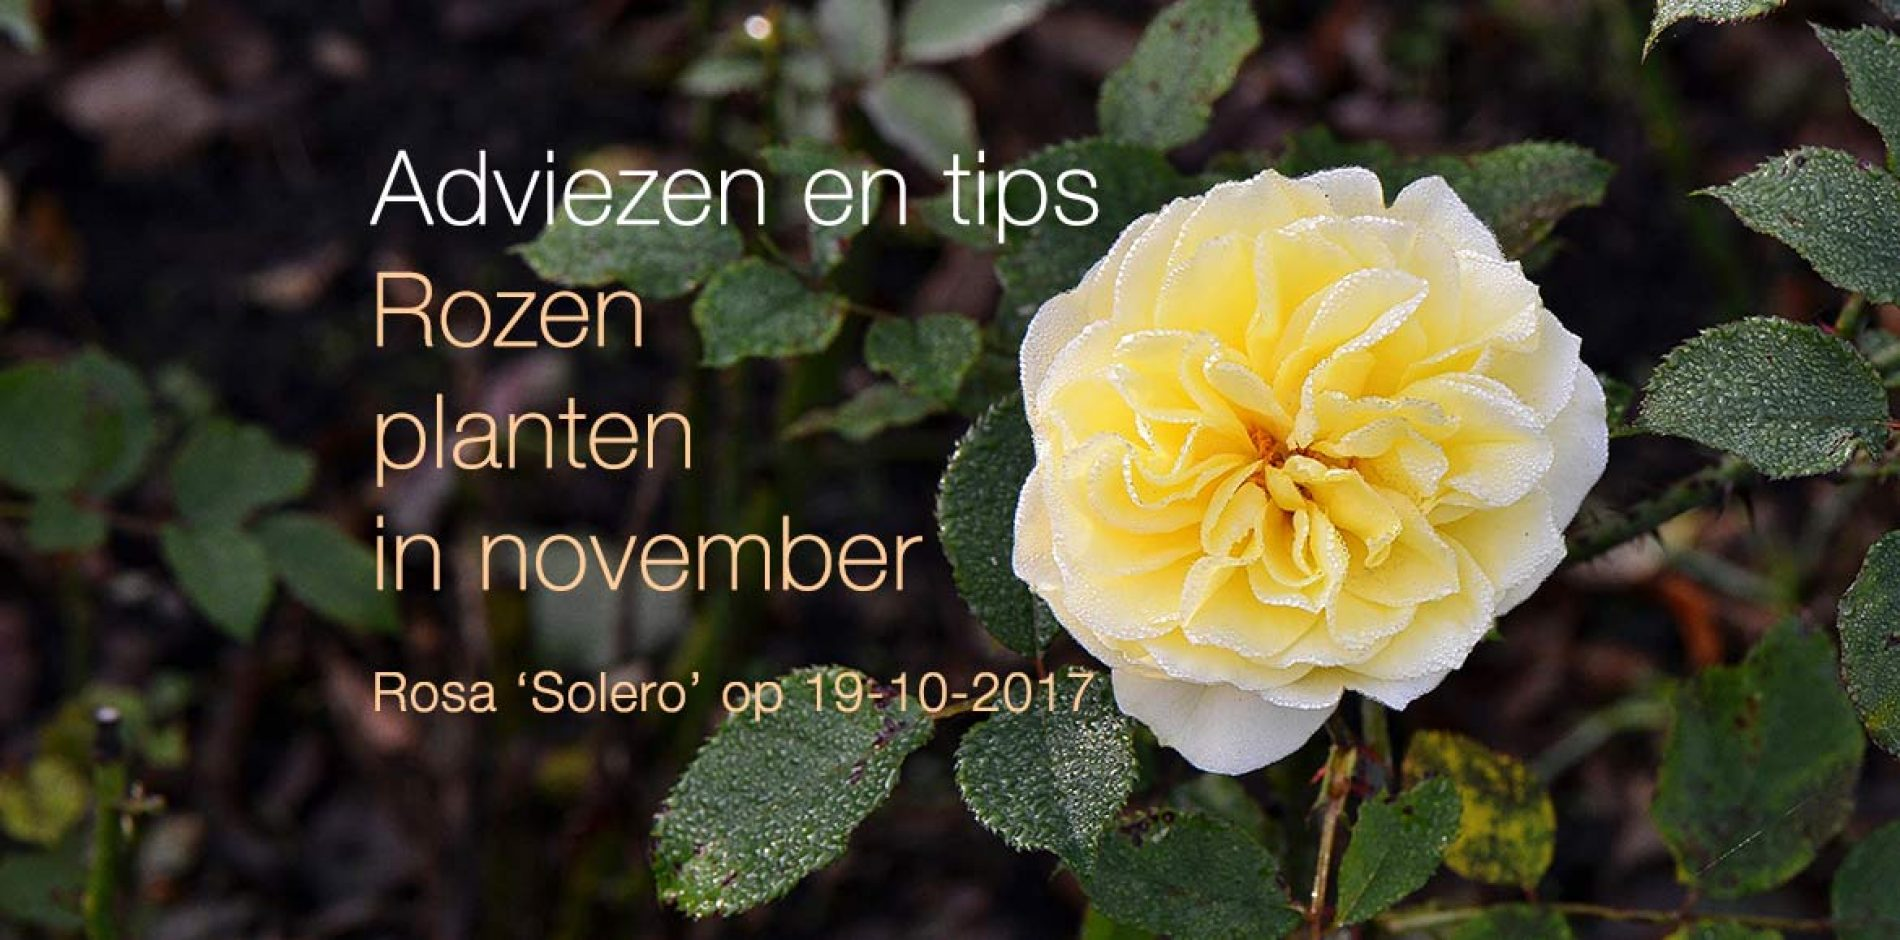 Rozen planten in november